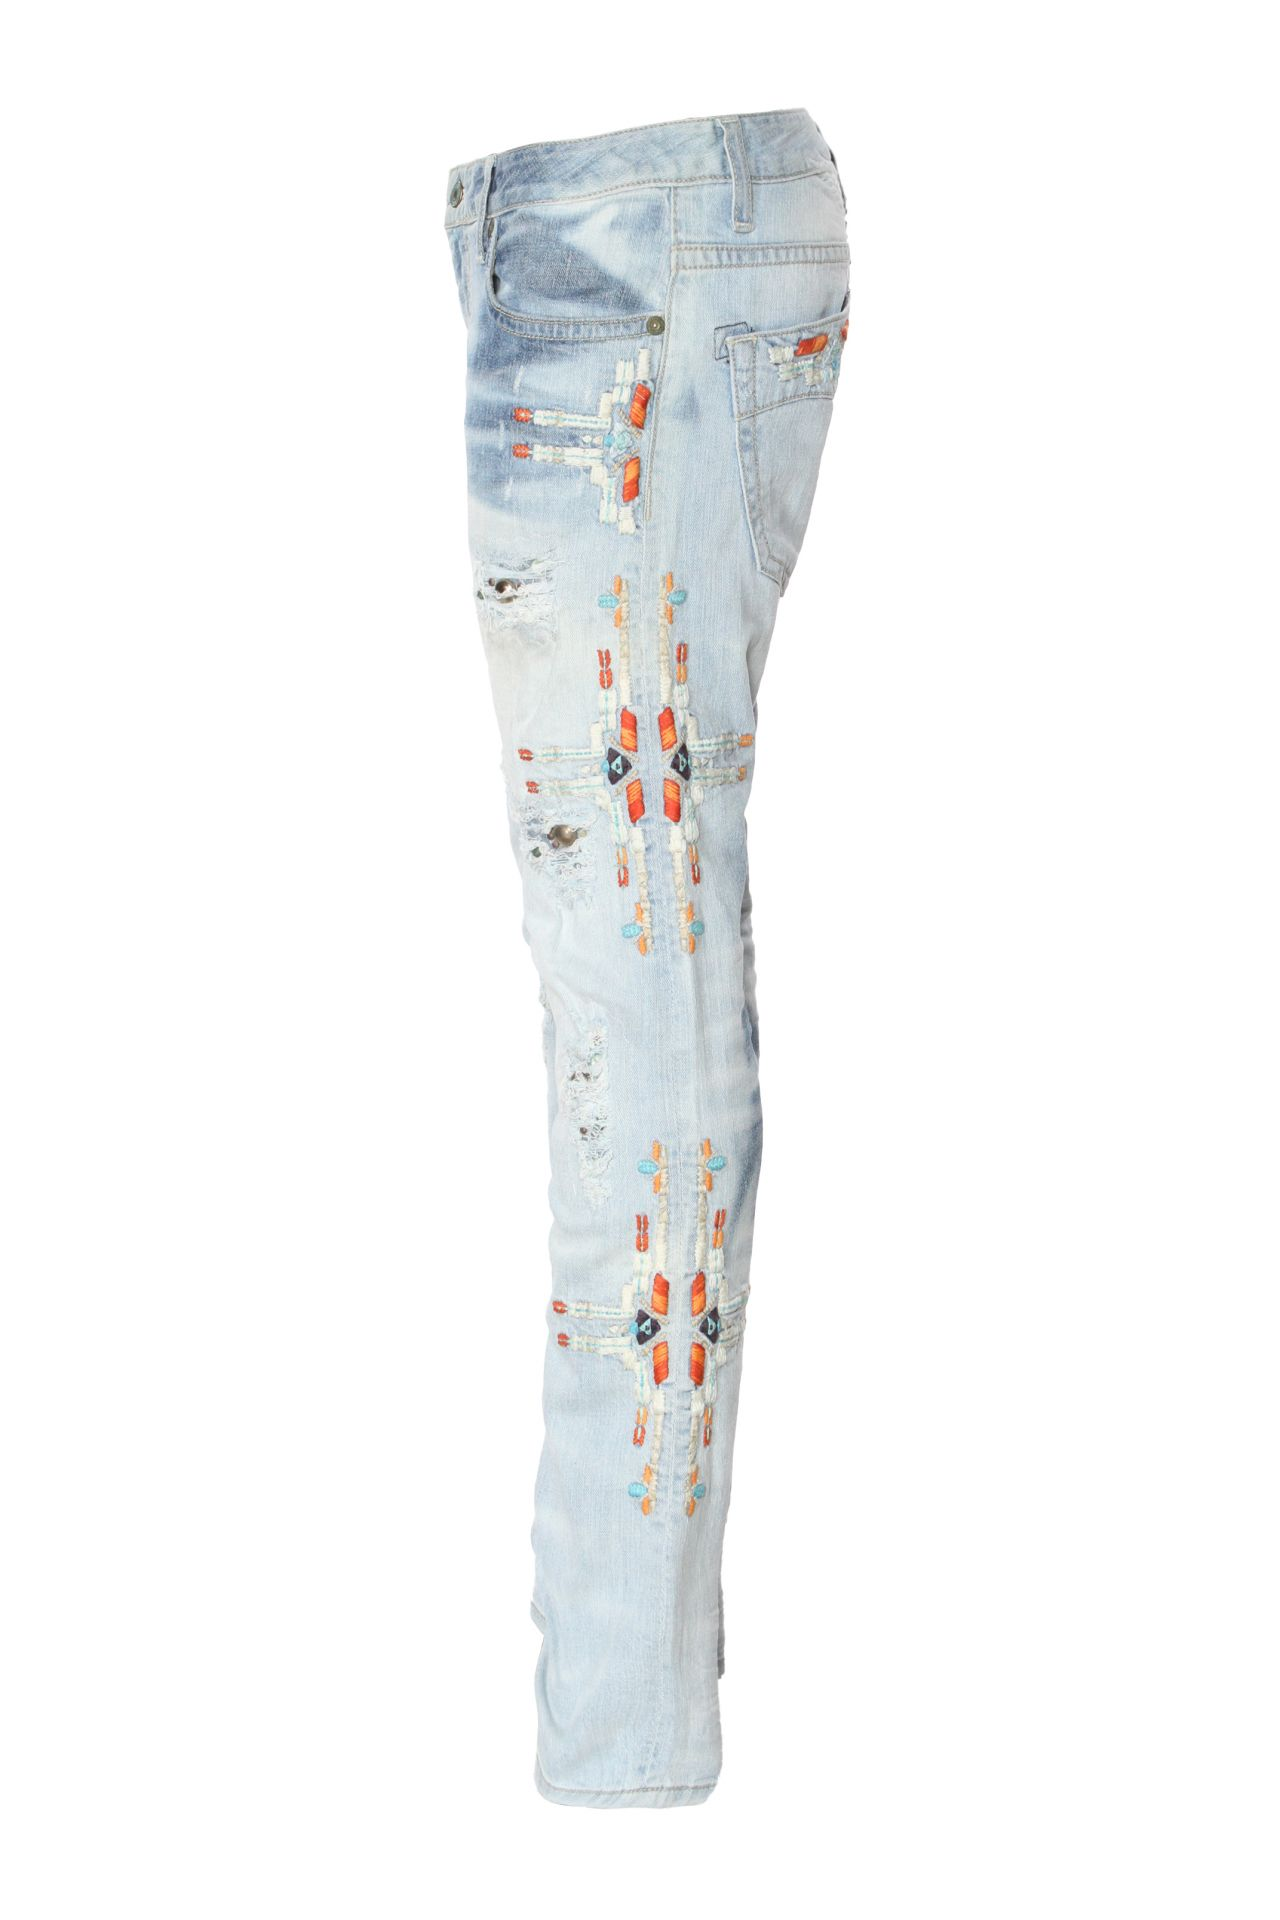 CLASSIC SLIM  IN NICOLE LIGHT BROKEN  WITH EMBROIDERY